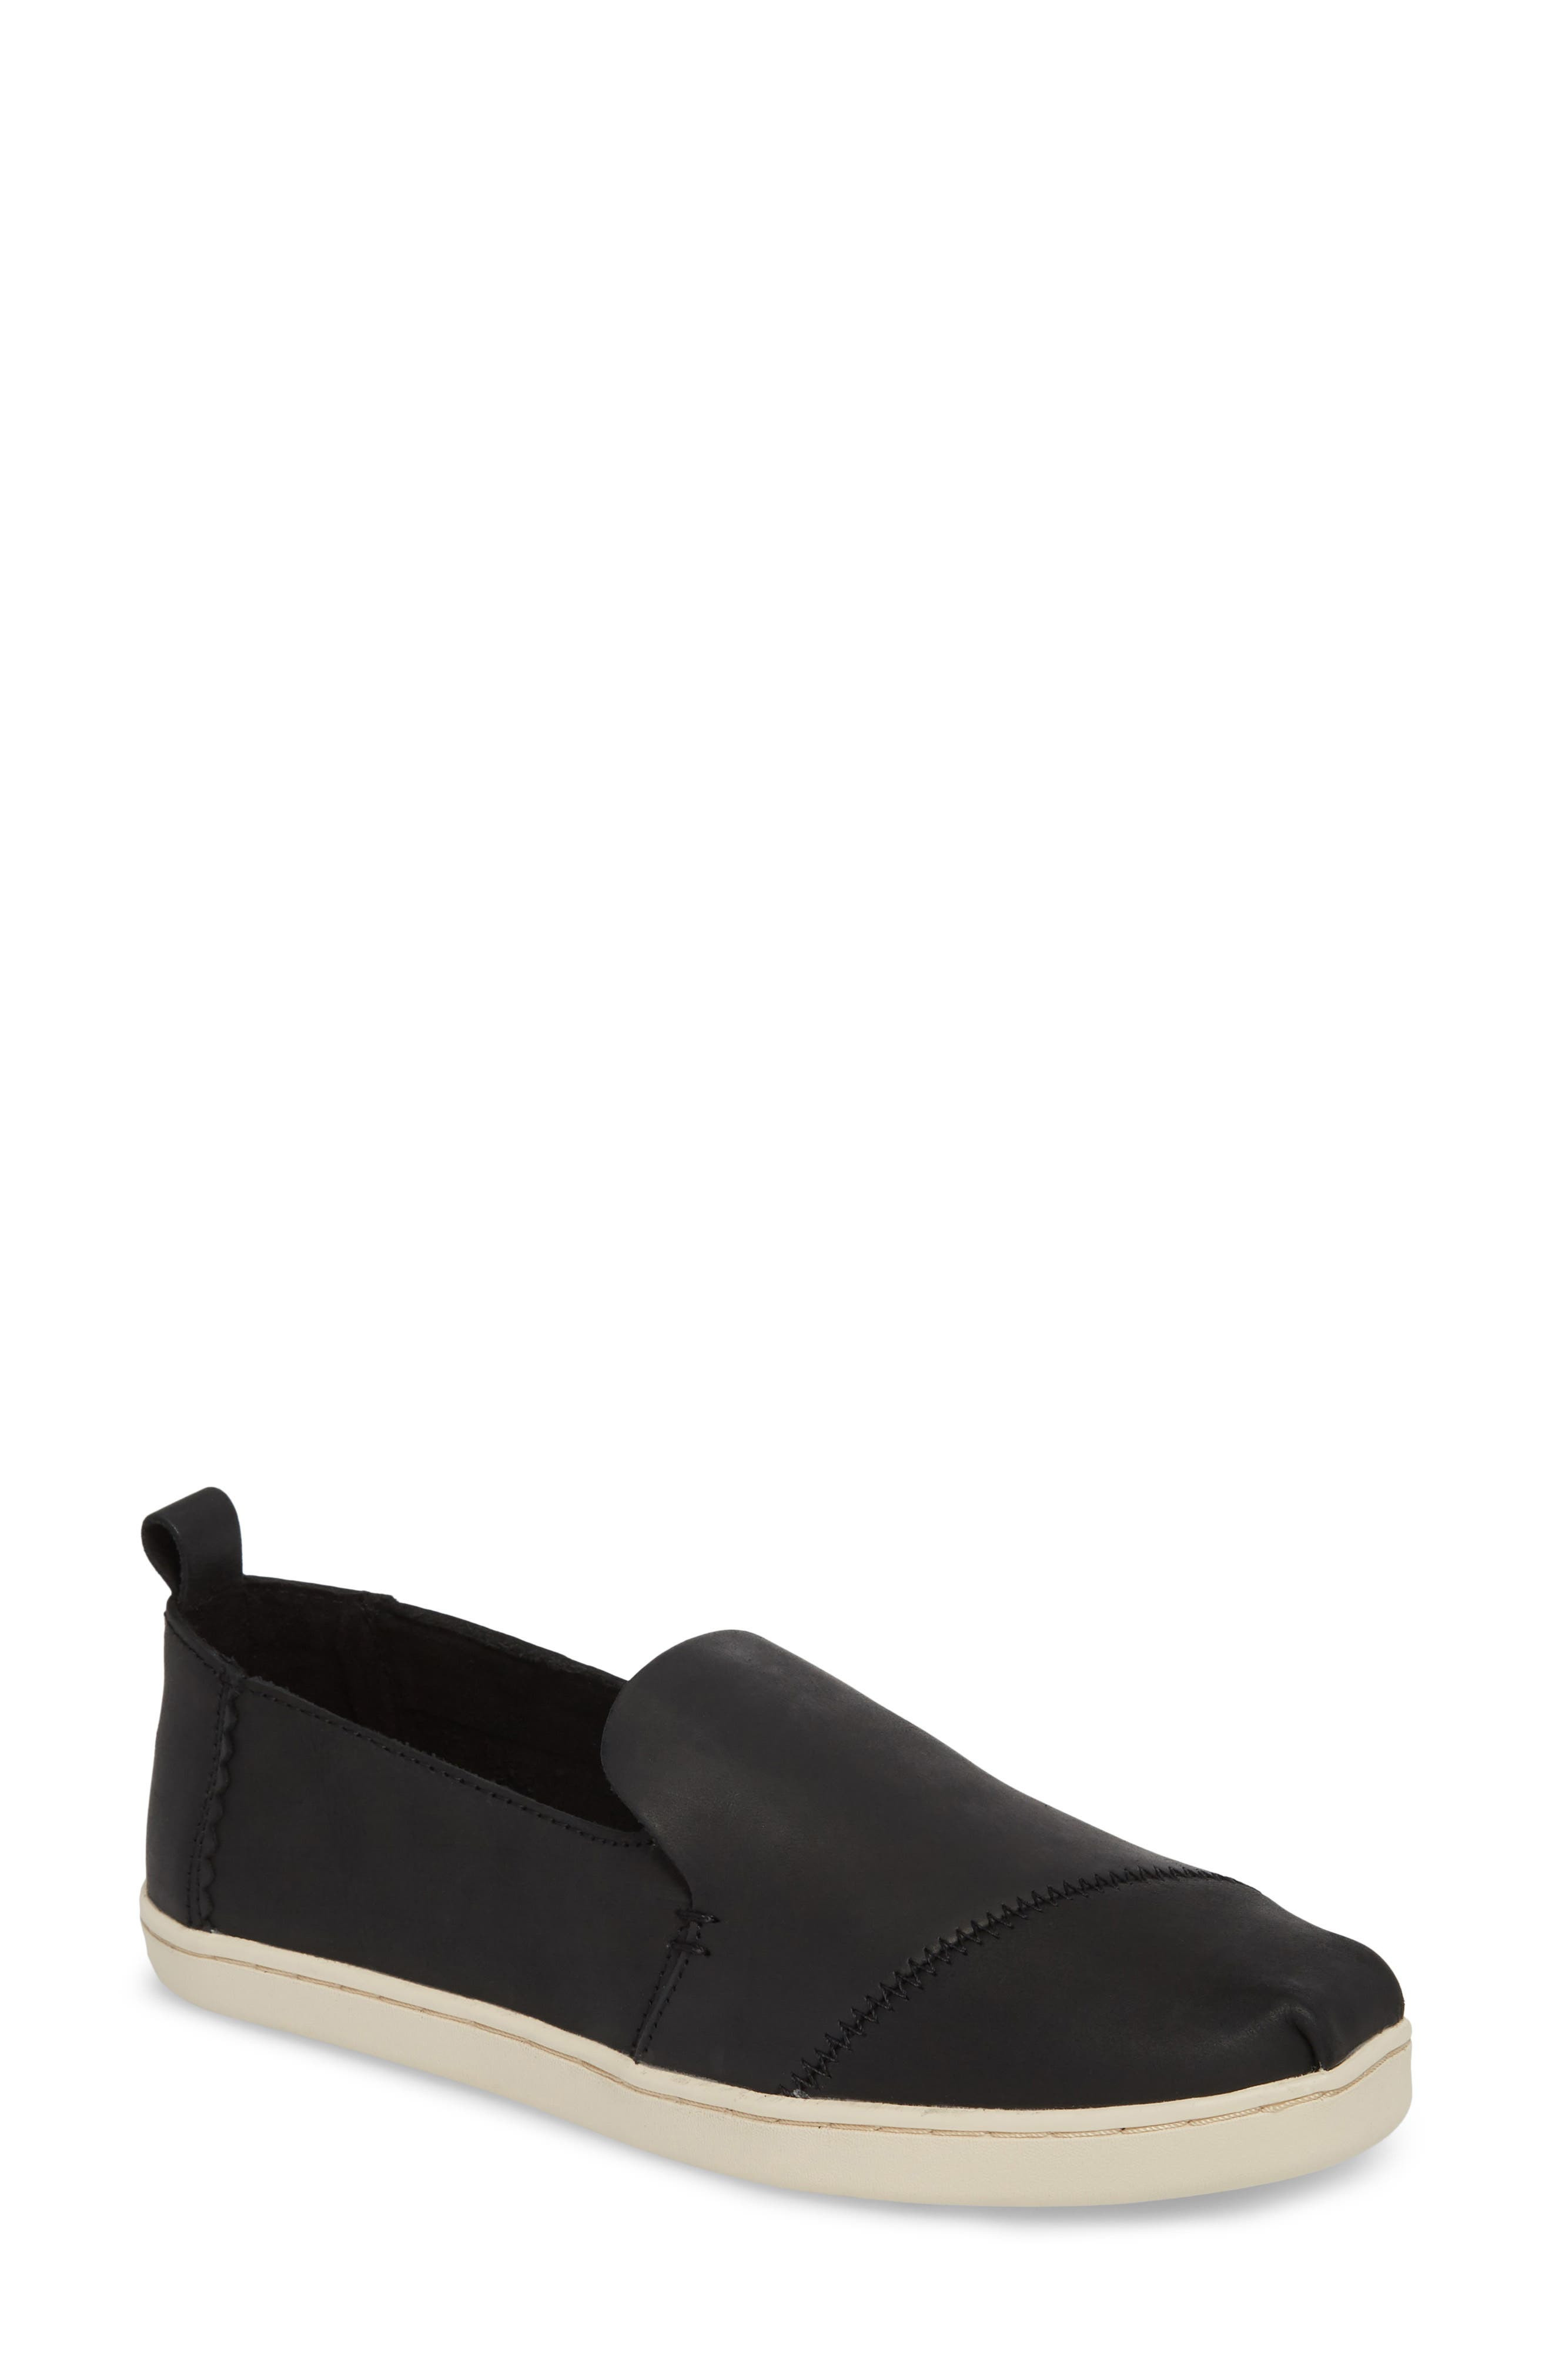 TOMS Women'S Deconstructed Alpargata Leather Flats in Black Leather